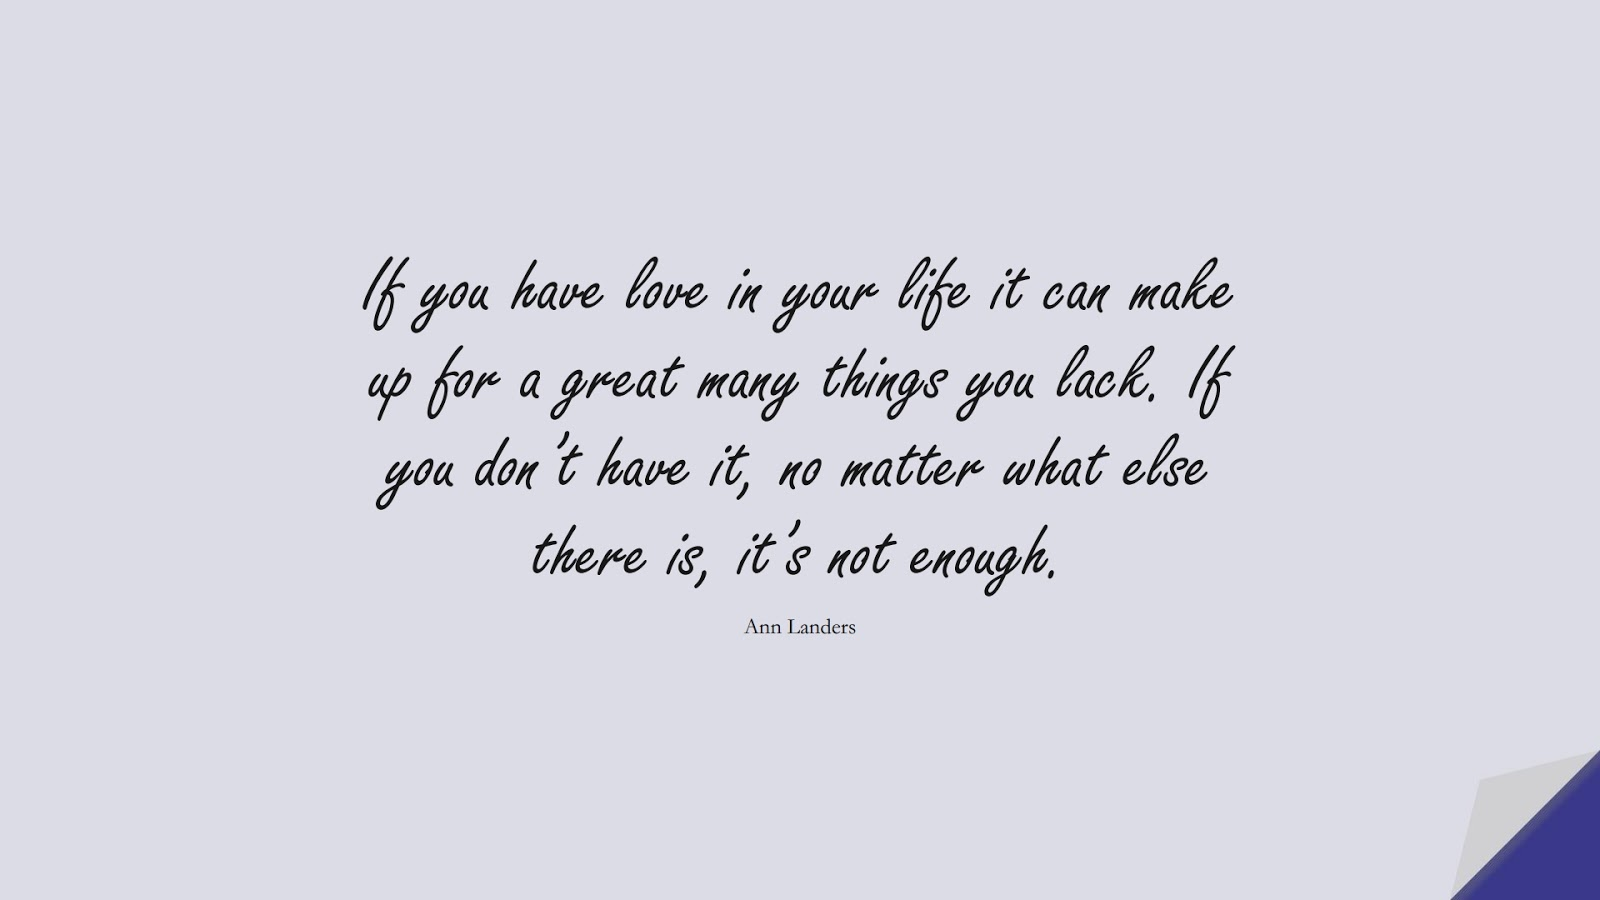 If you have love in your life it can make up for a great many things you lack. If you don't have it, no matter what else there is, it's not enough. (Ann Landers);  #LoveQuotes